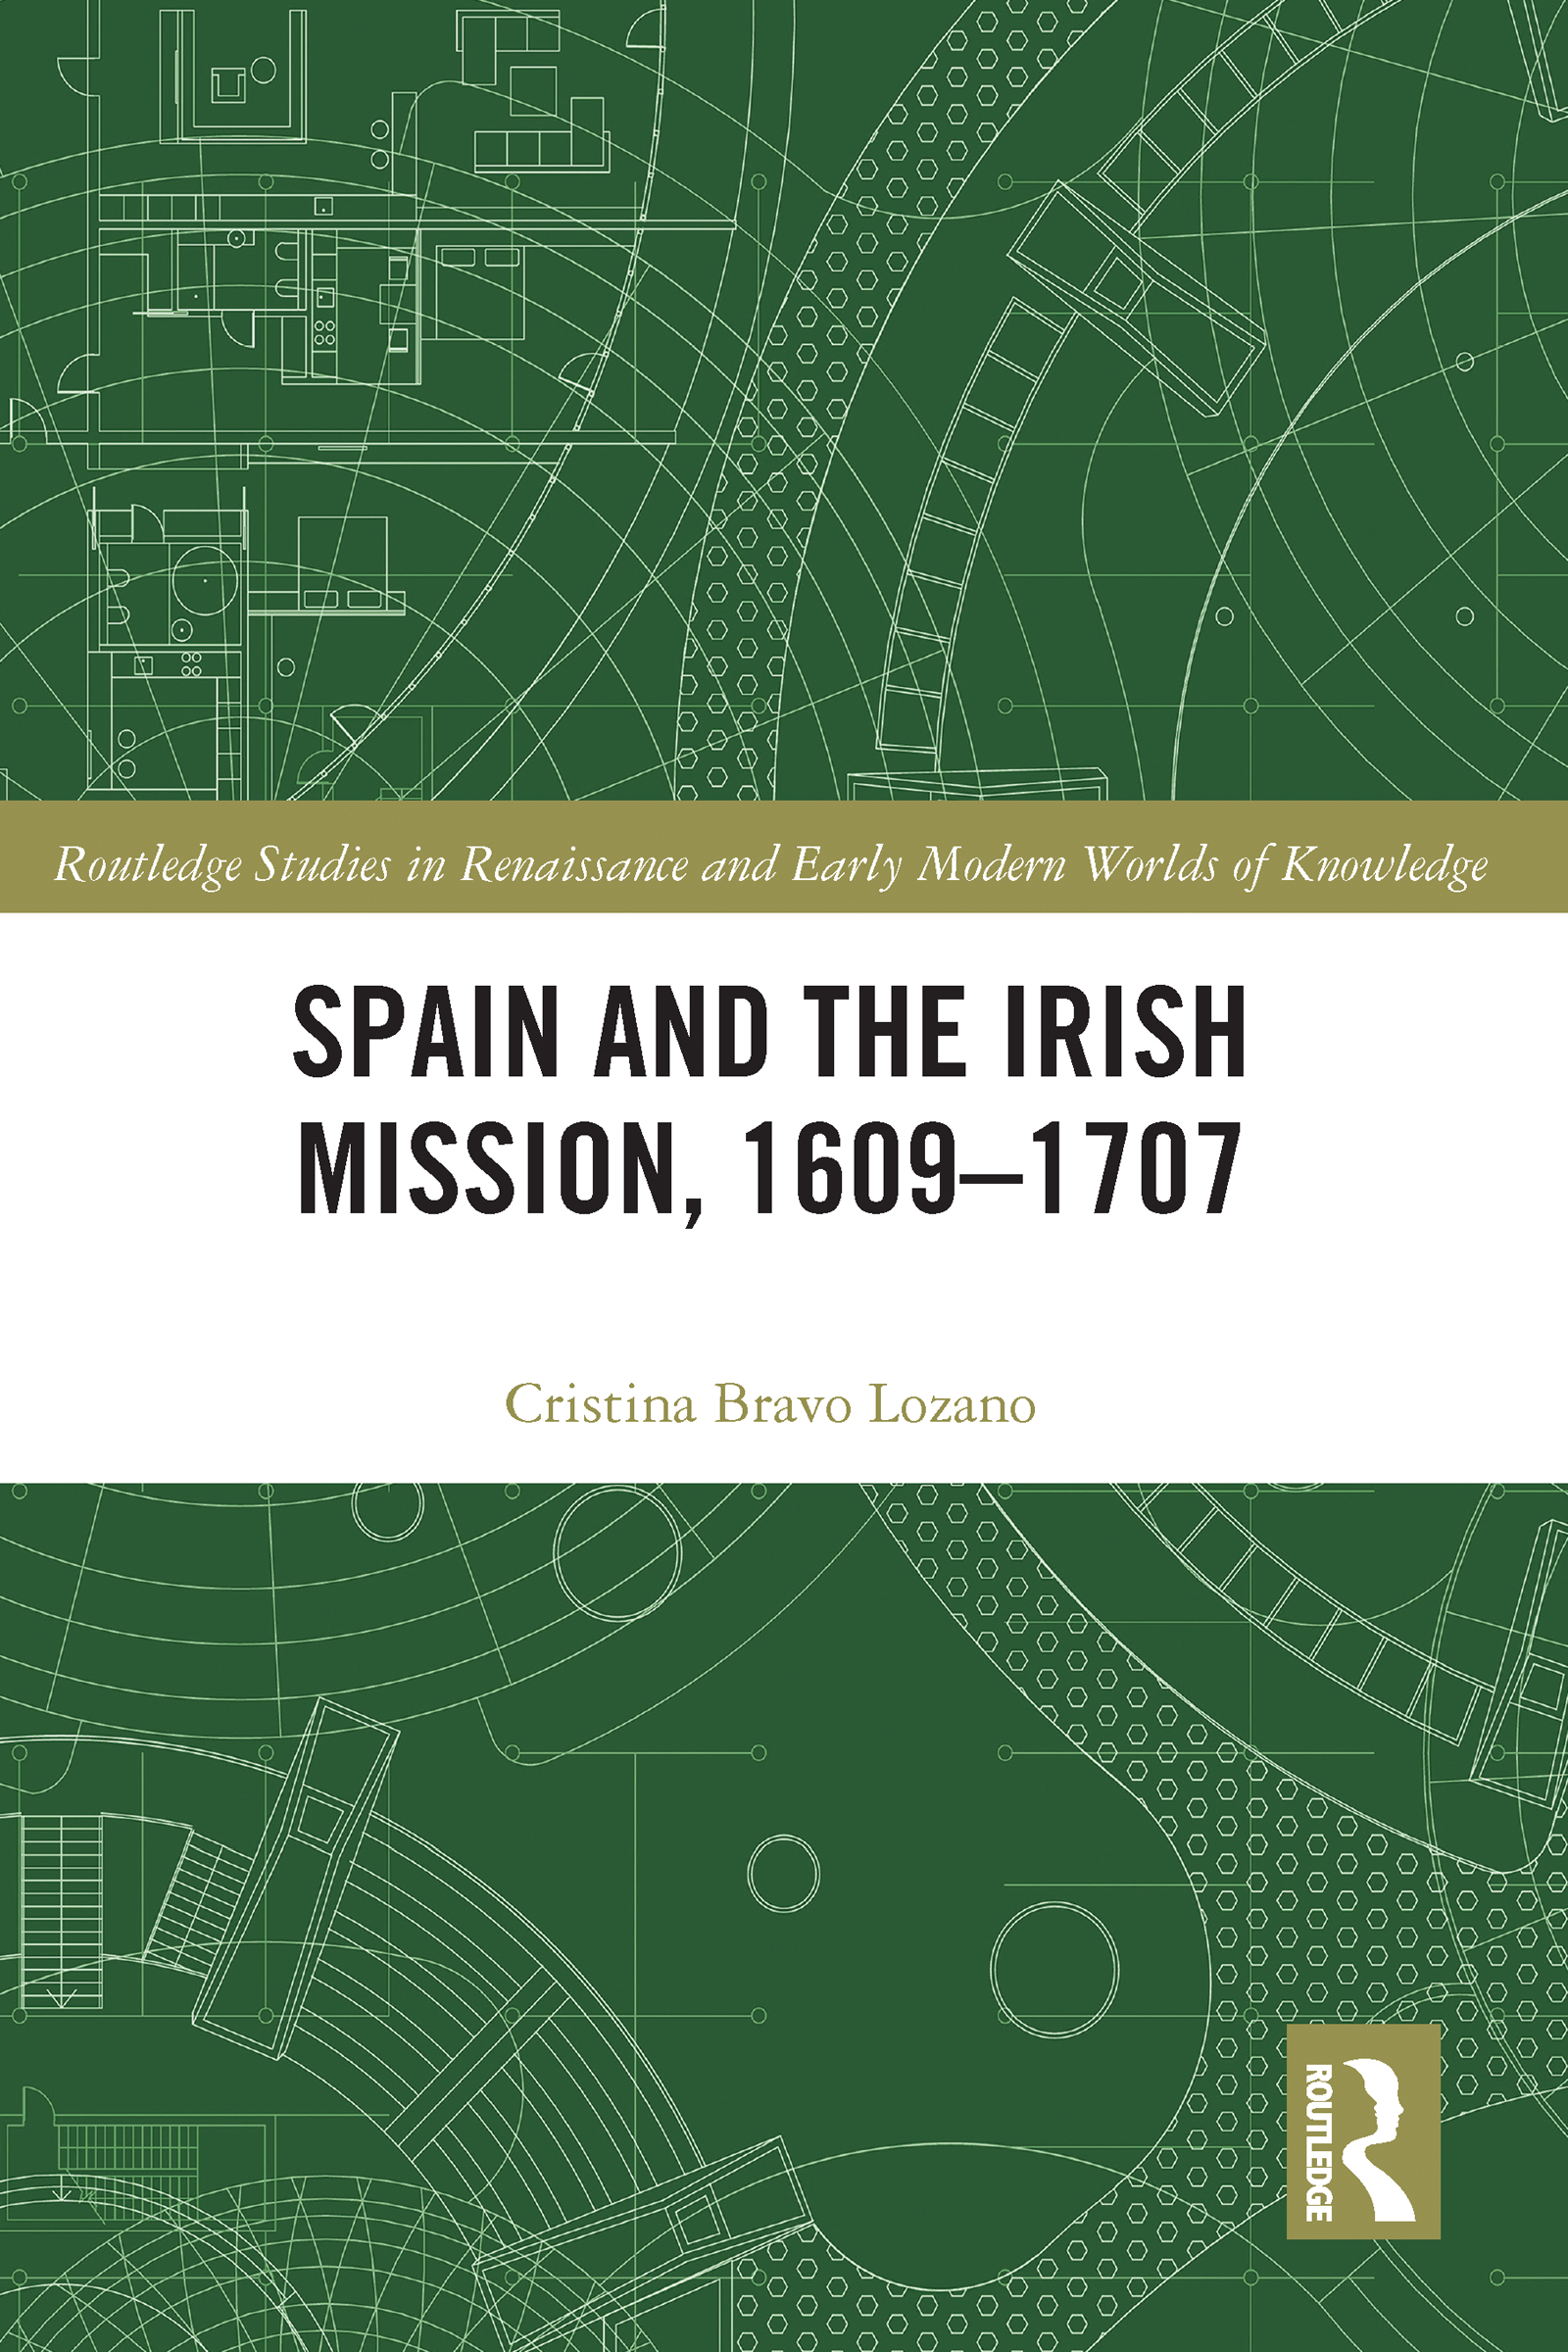 Spain and the Irish Mission, 1609-1707